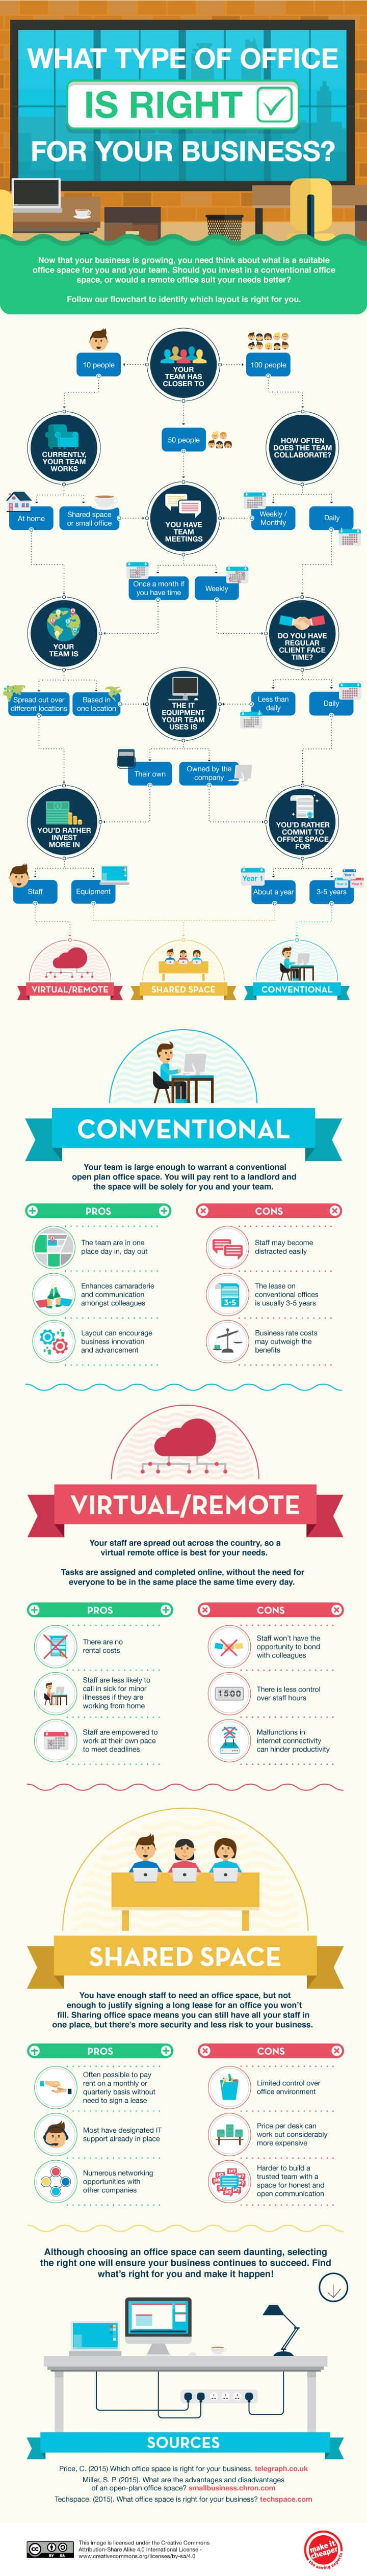 Infographic: How To Choose The Right Office Space Options